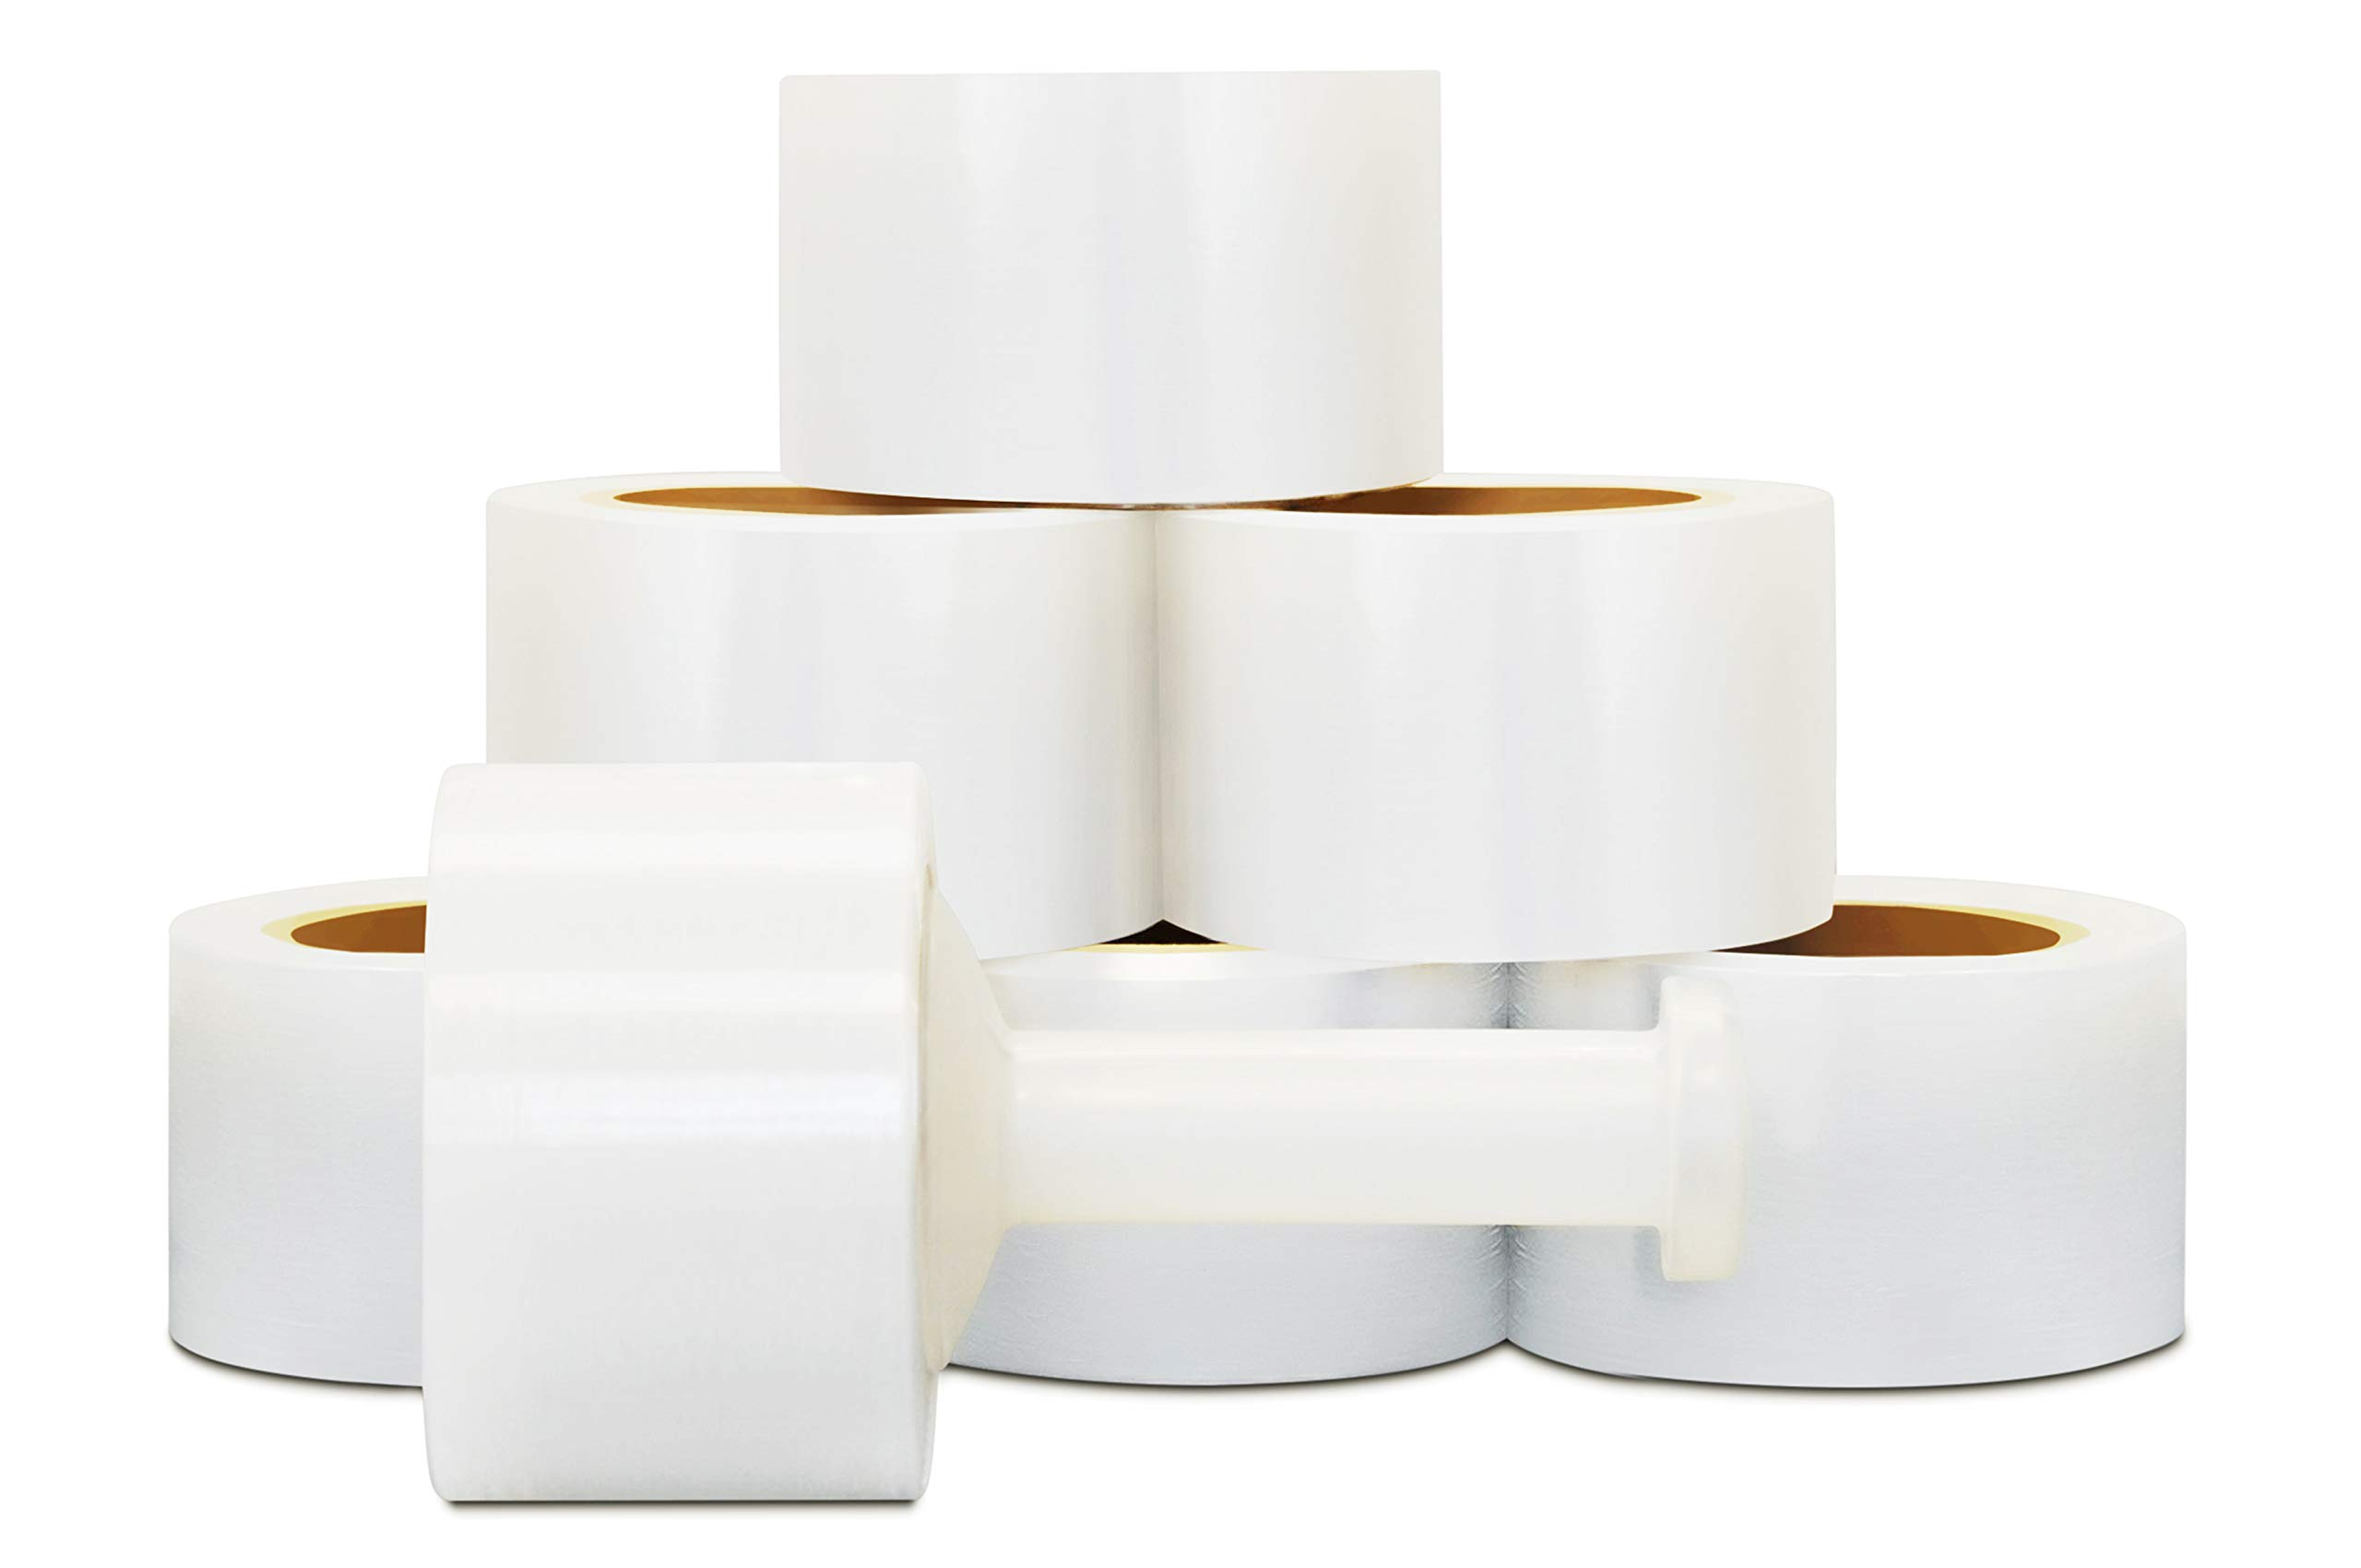 Cast Narrow Banding Stretch Wrap Film Self-Adhering 3 Inch x 1000 Feet x 80 Gauge 18 Rolls by PackagingSuppliesByMail